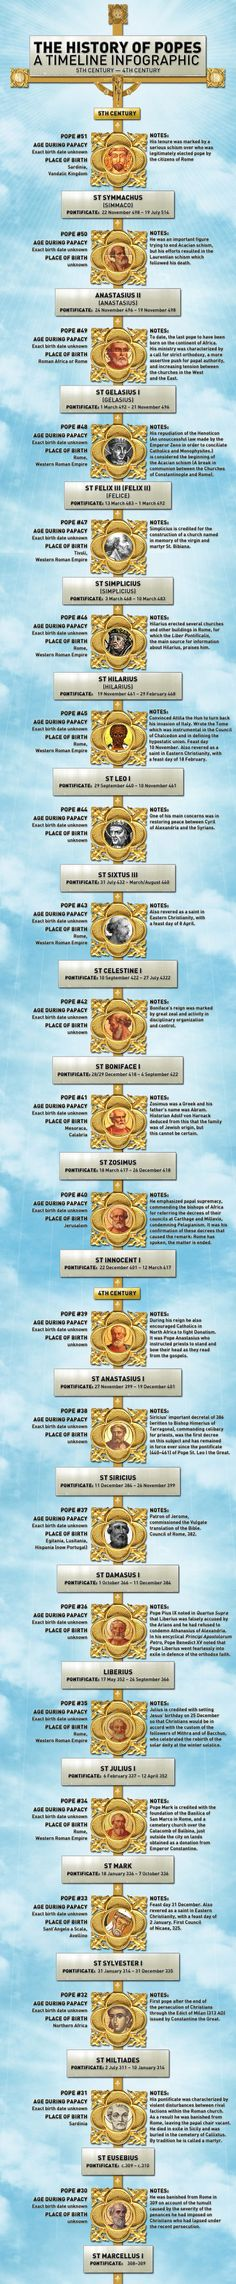 History of Popes (4th century - 5th century)